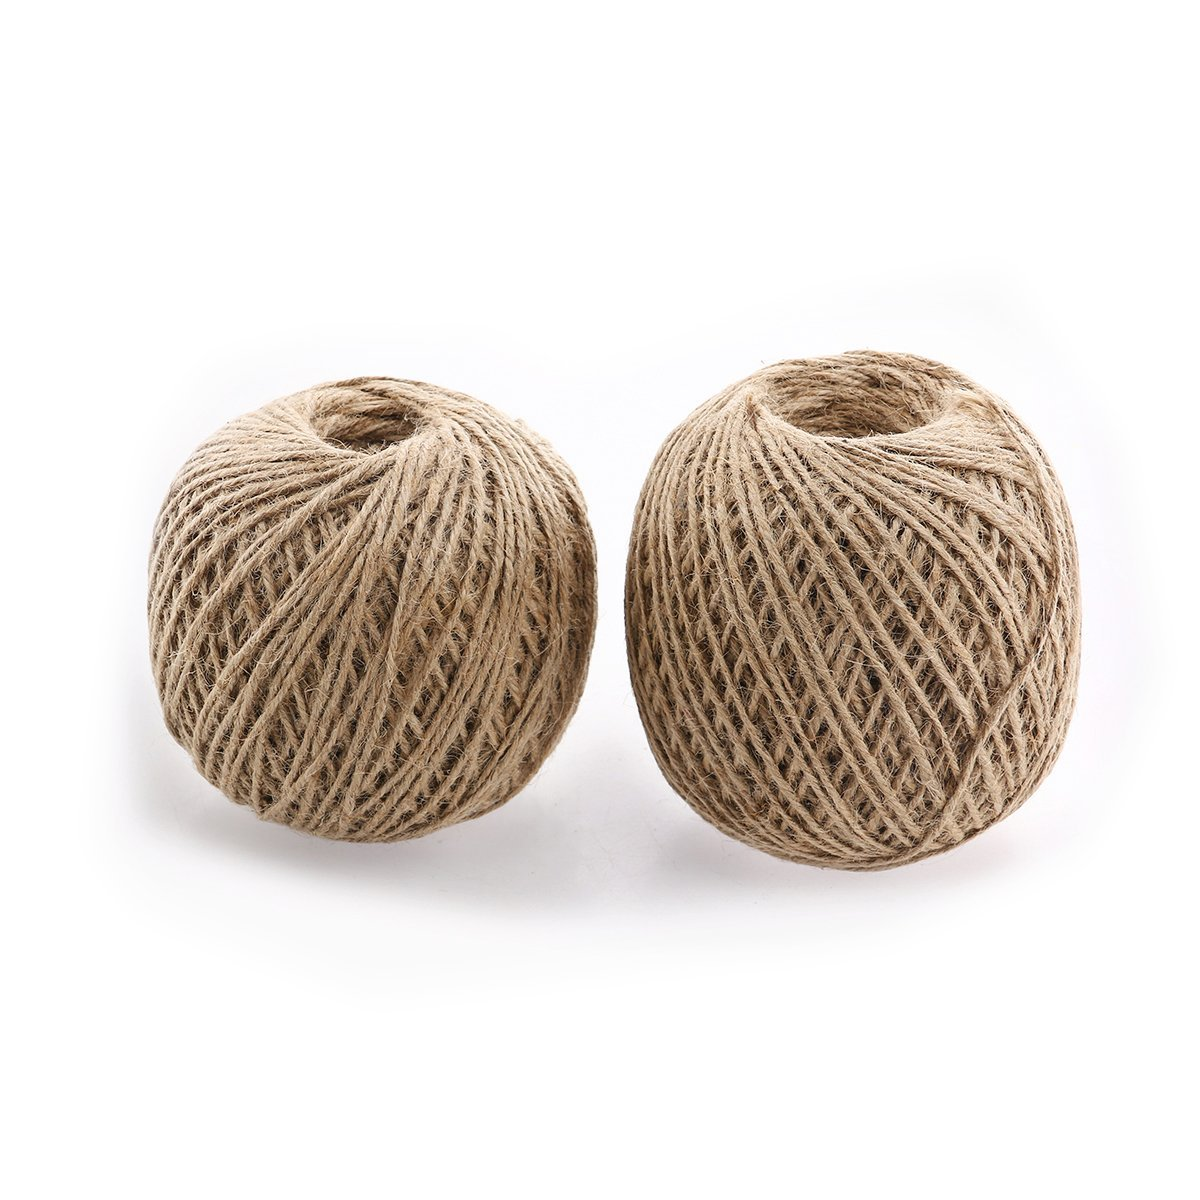 Tinksky Natural Jute Twine String Cord 190M 2MM Pack of 2